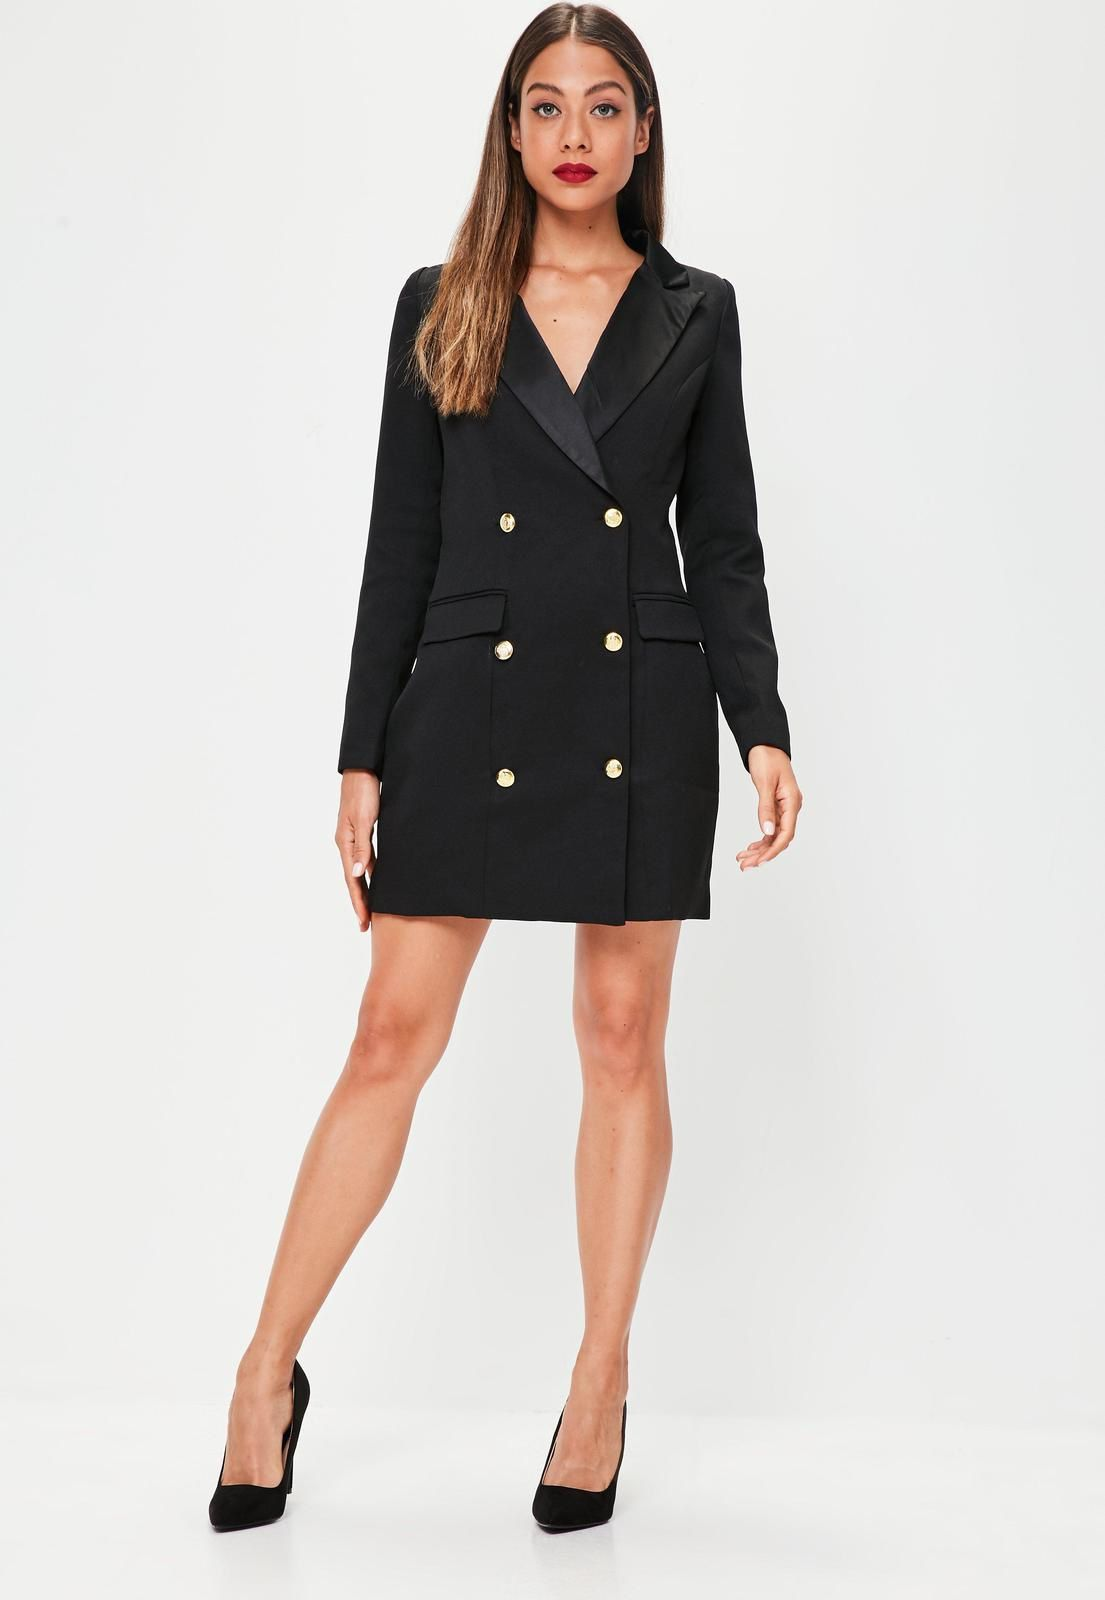 https://www.missguidedfr.fr/robe-blazer-noire-a-manches-longues-1